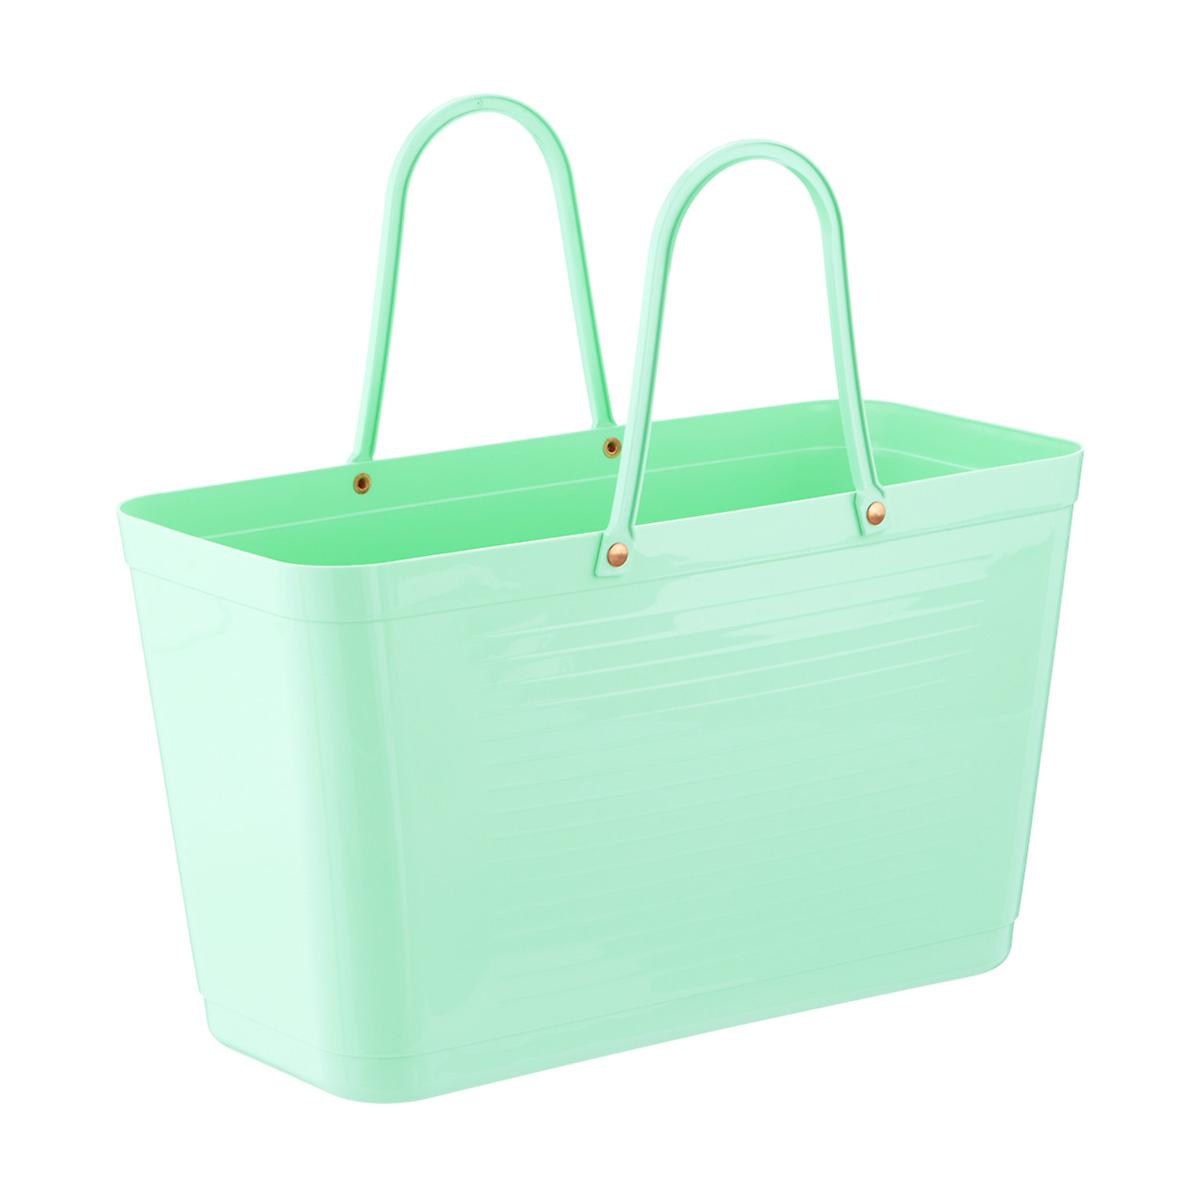 Mint Hinza Shopping Tote